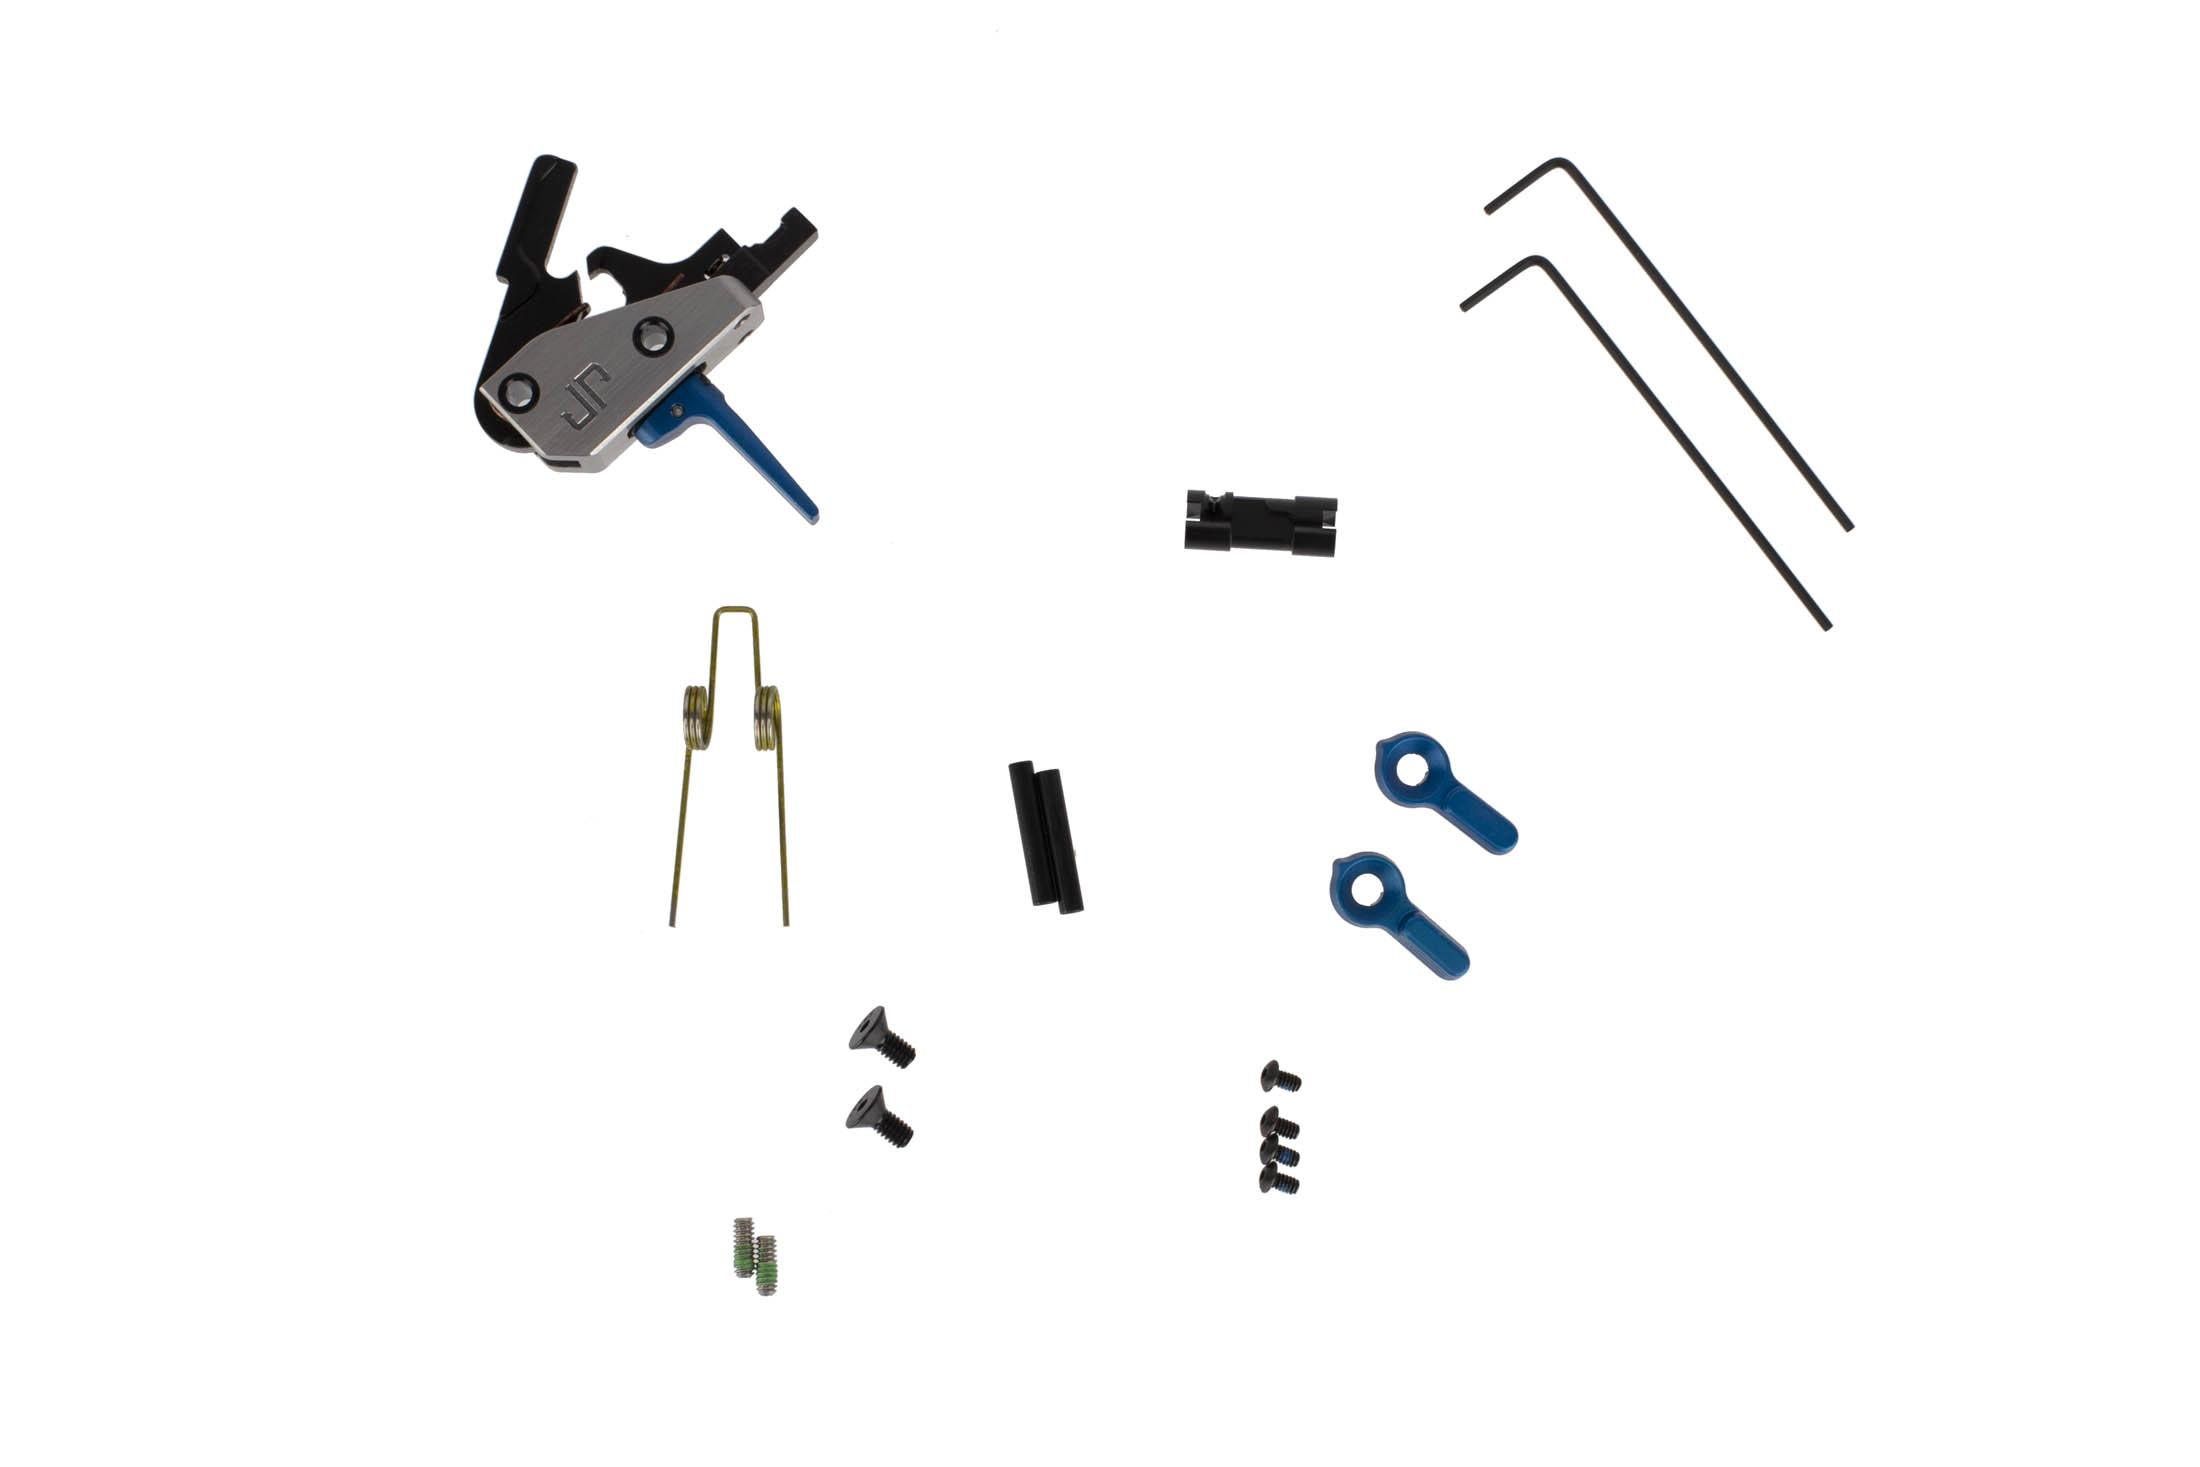 JP Enterprise JPFC-MF drop-in AR-15 trigger blue includes anti-walk pins, ambi-safety, alternate spring, and tools.